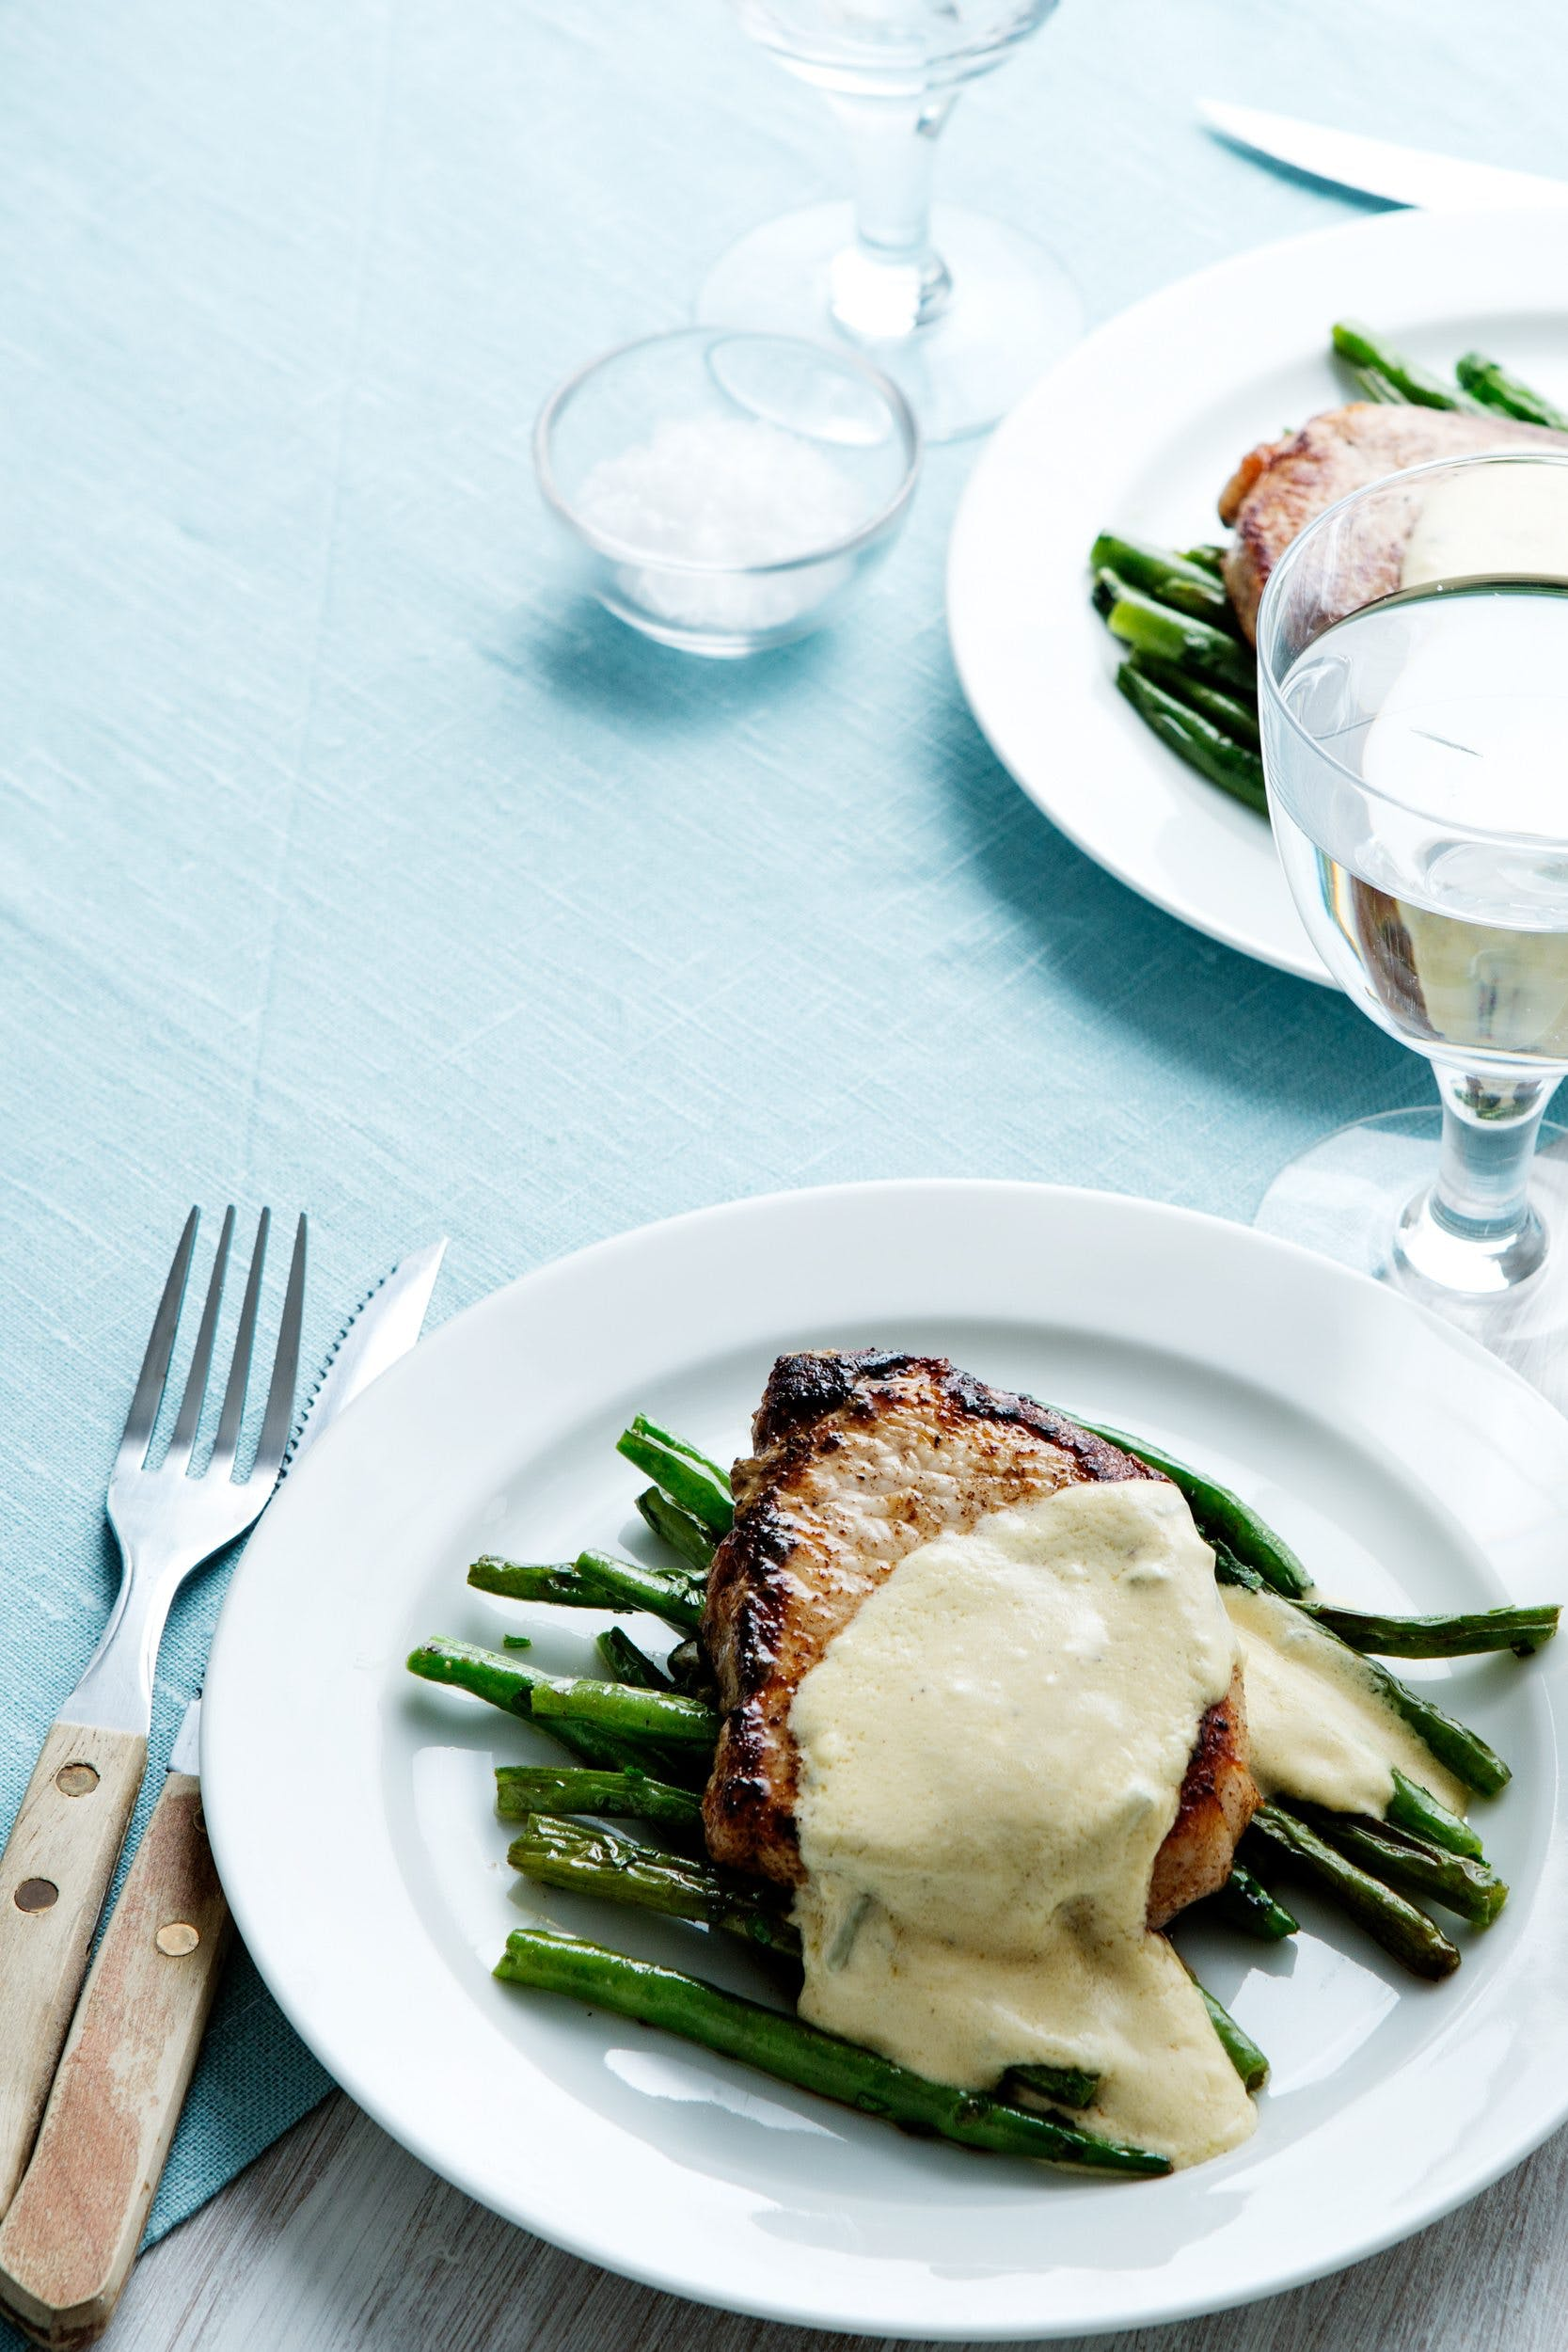 Keto pork chops with blue-cheese sauce